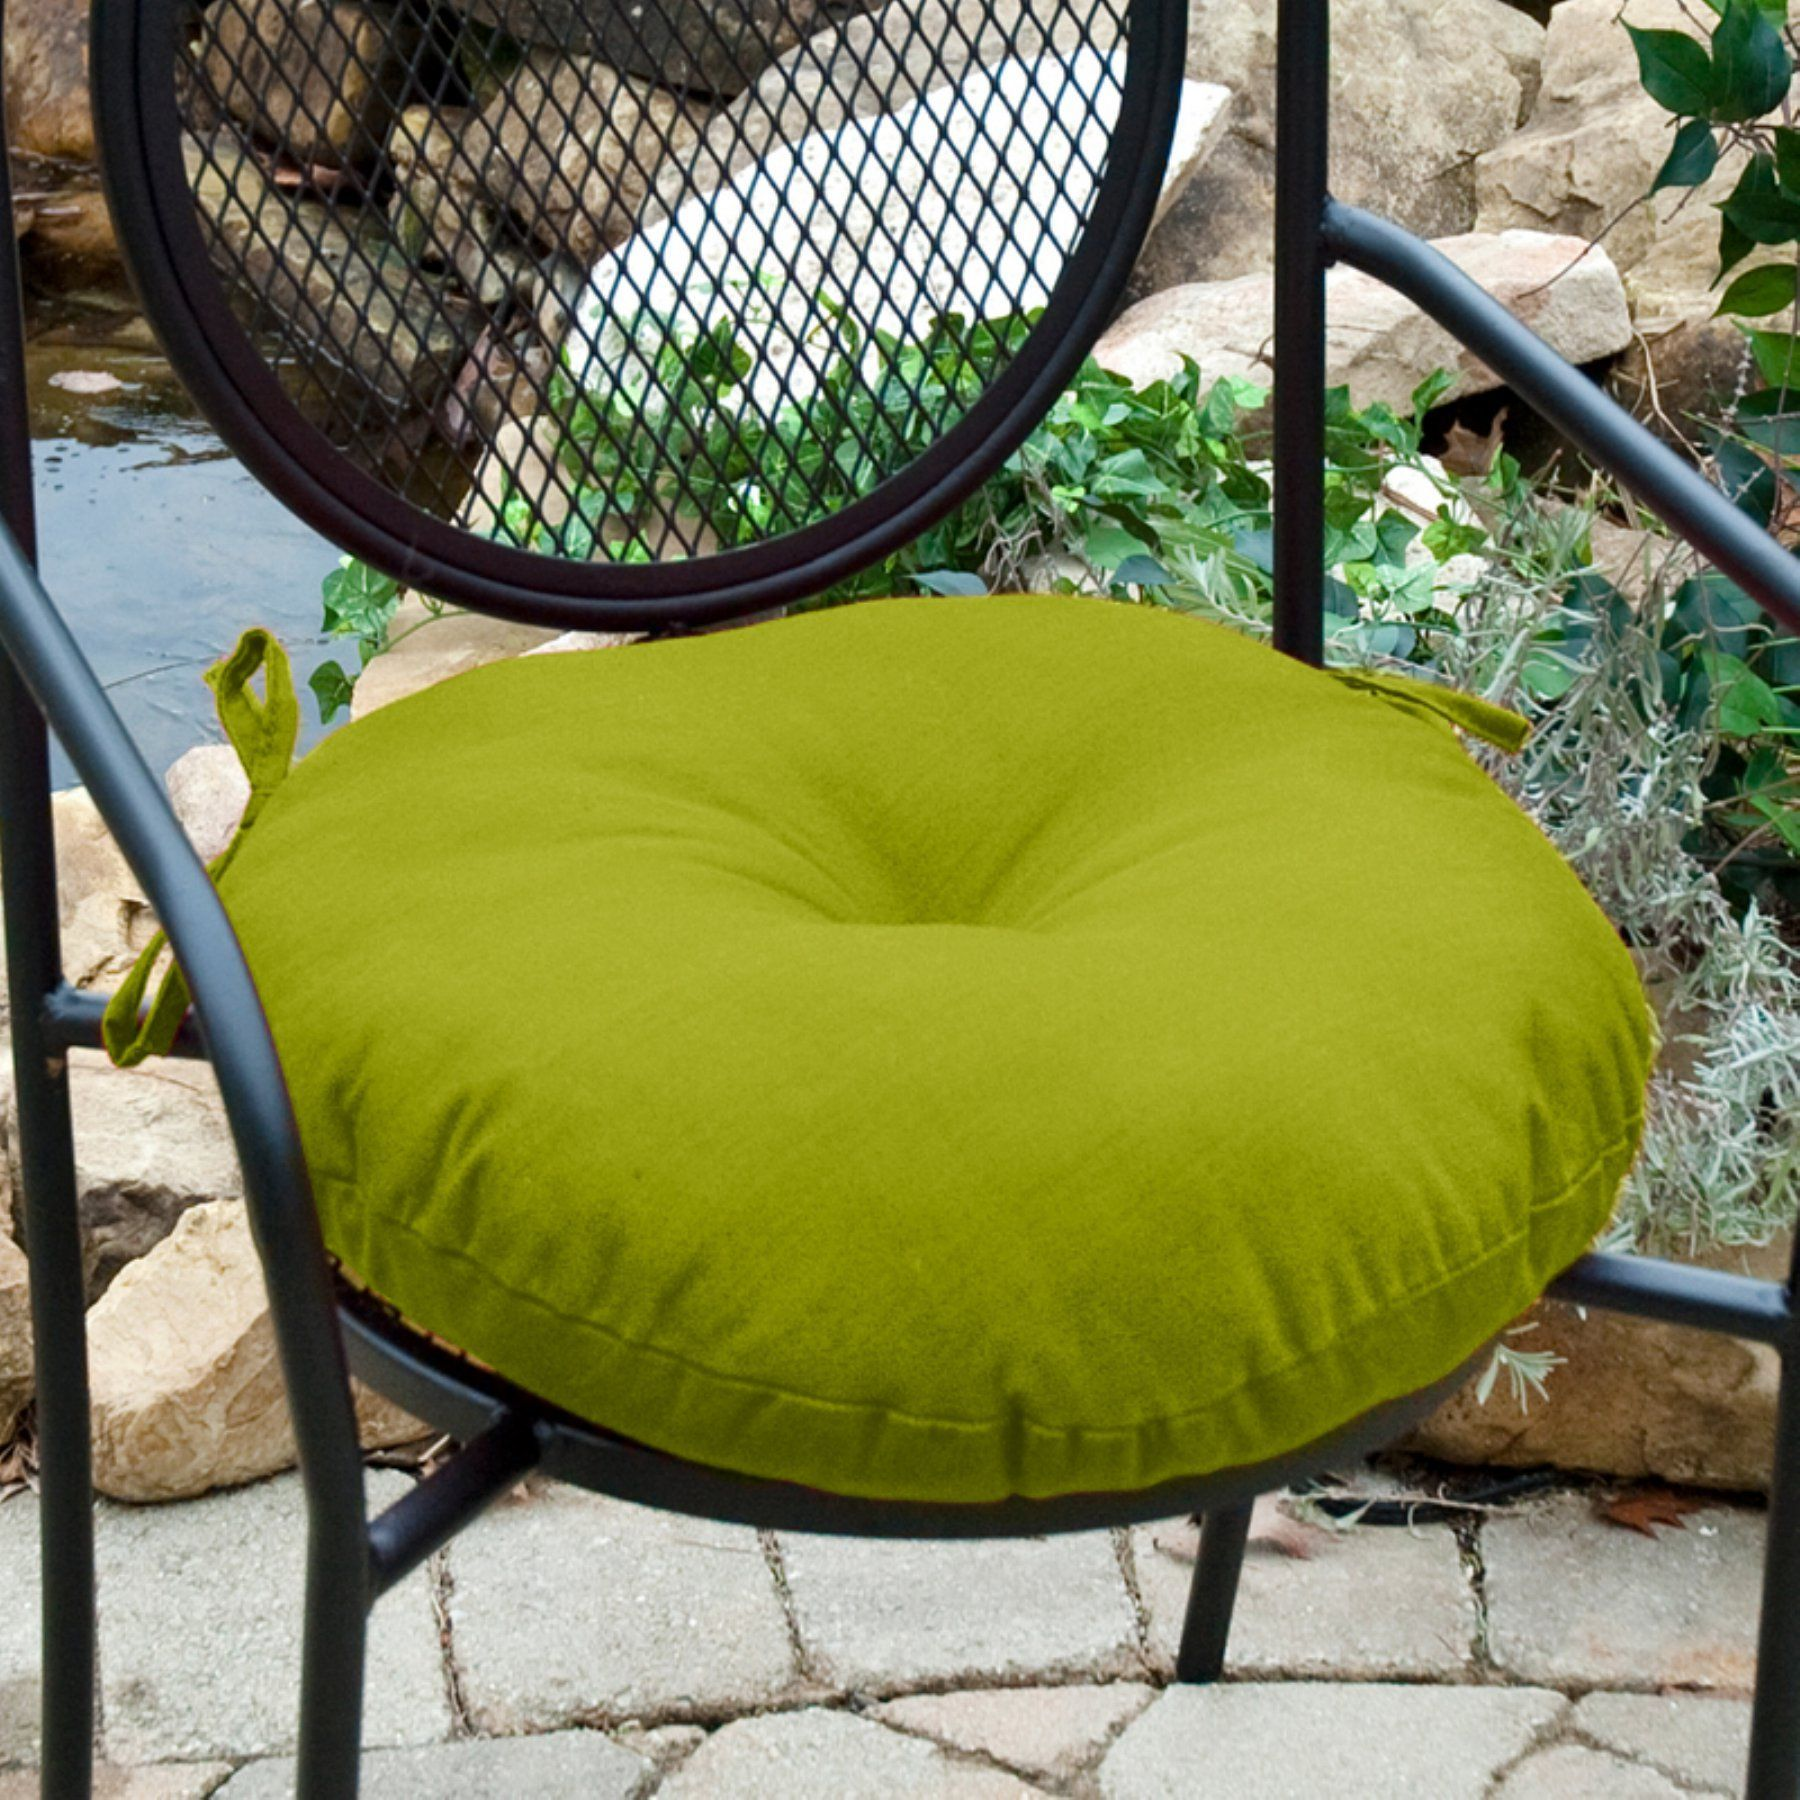 Greendale Home Fashions 18 In Round Outdoor Bistro Chair Cushion